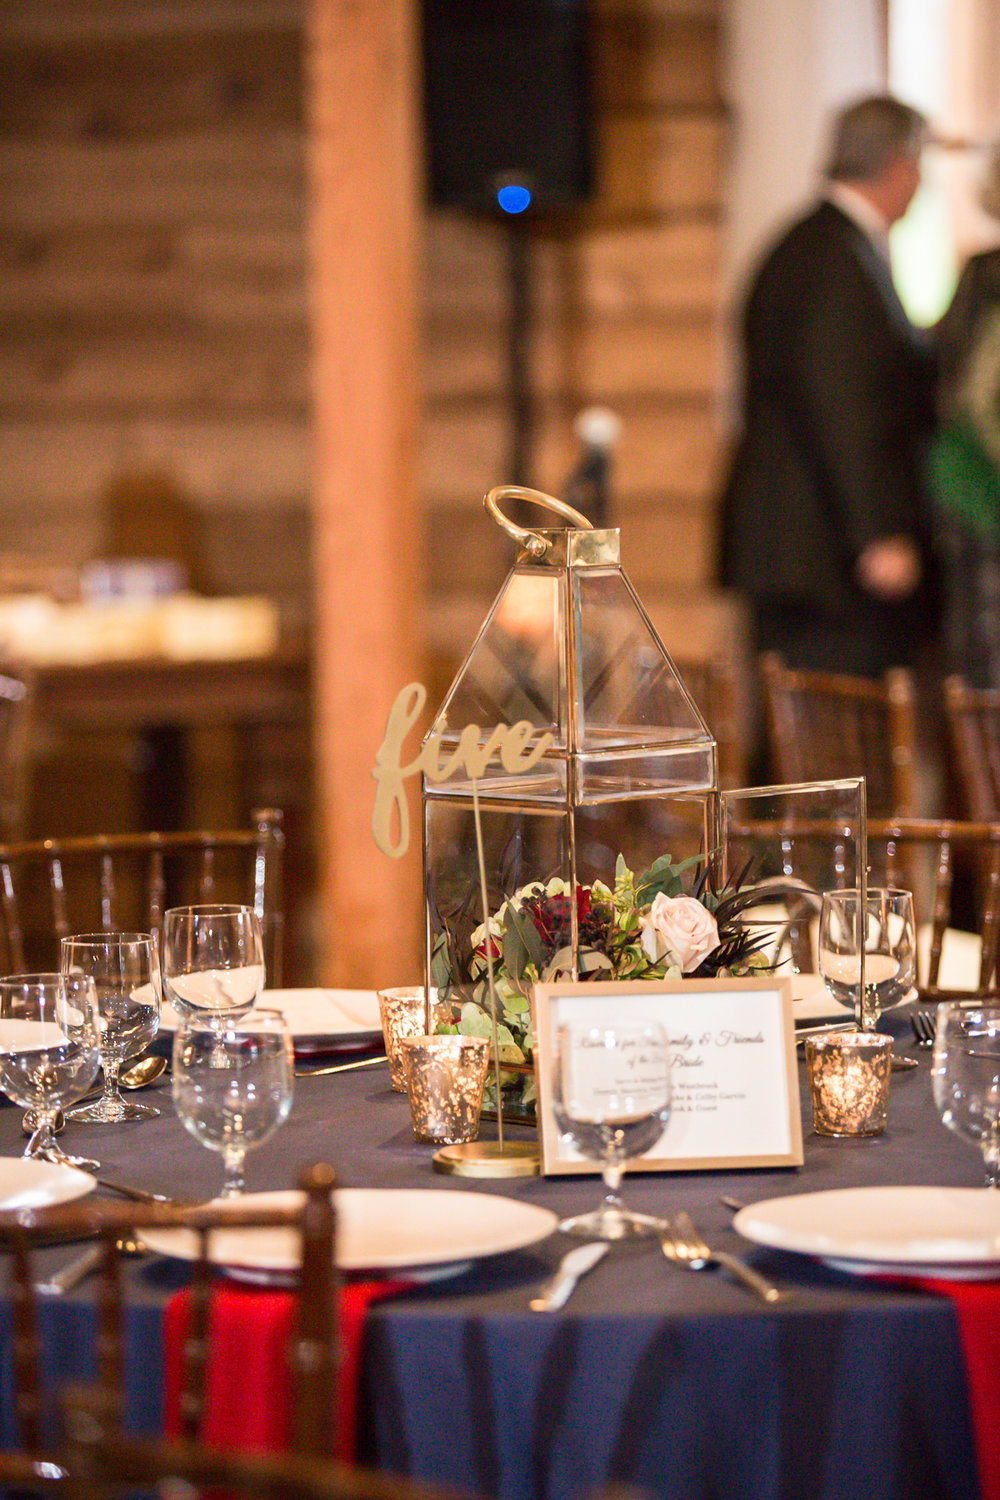 The-Barn-at-Sycamore-Farms-wedding-Shawn-and-Hayden-0209.jpg